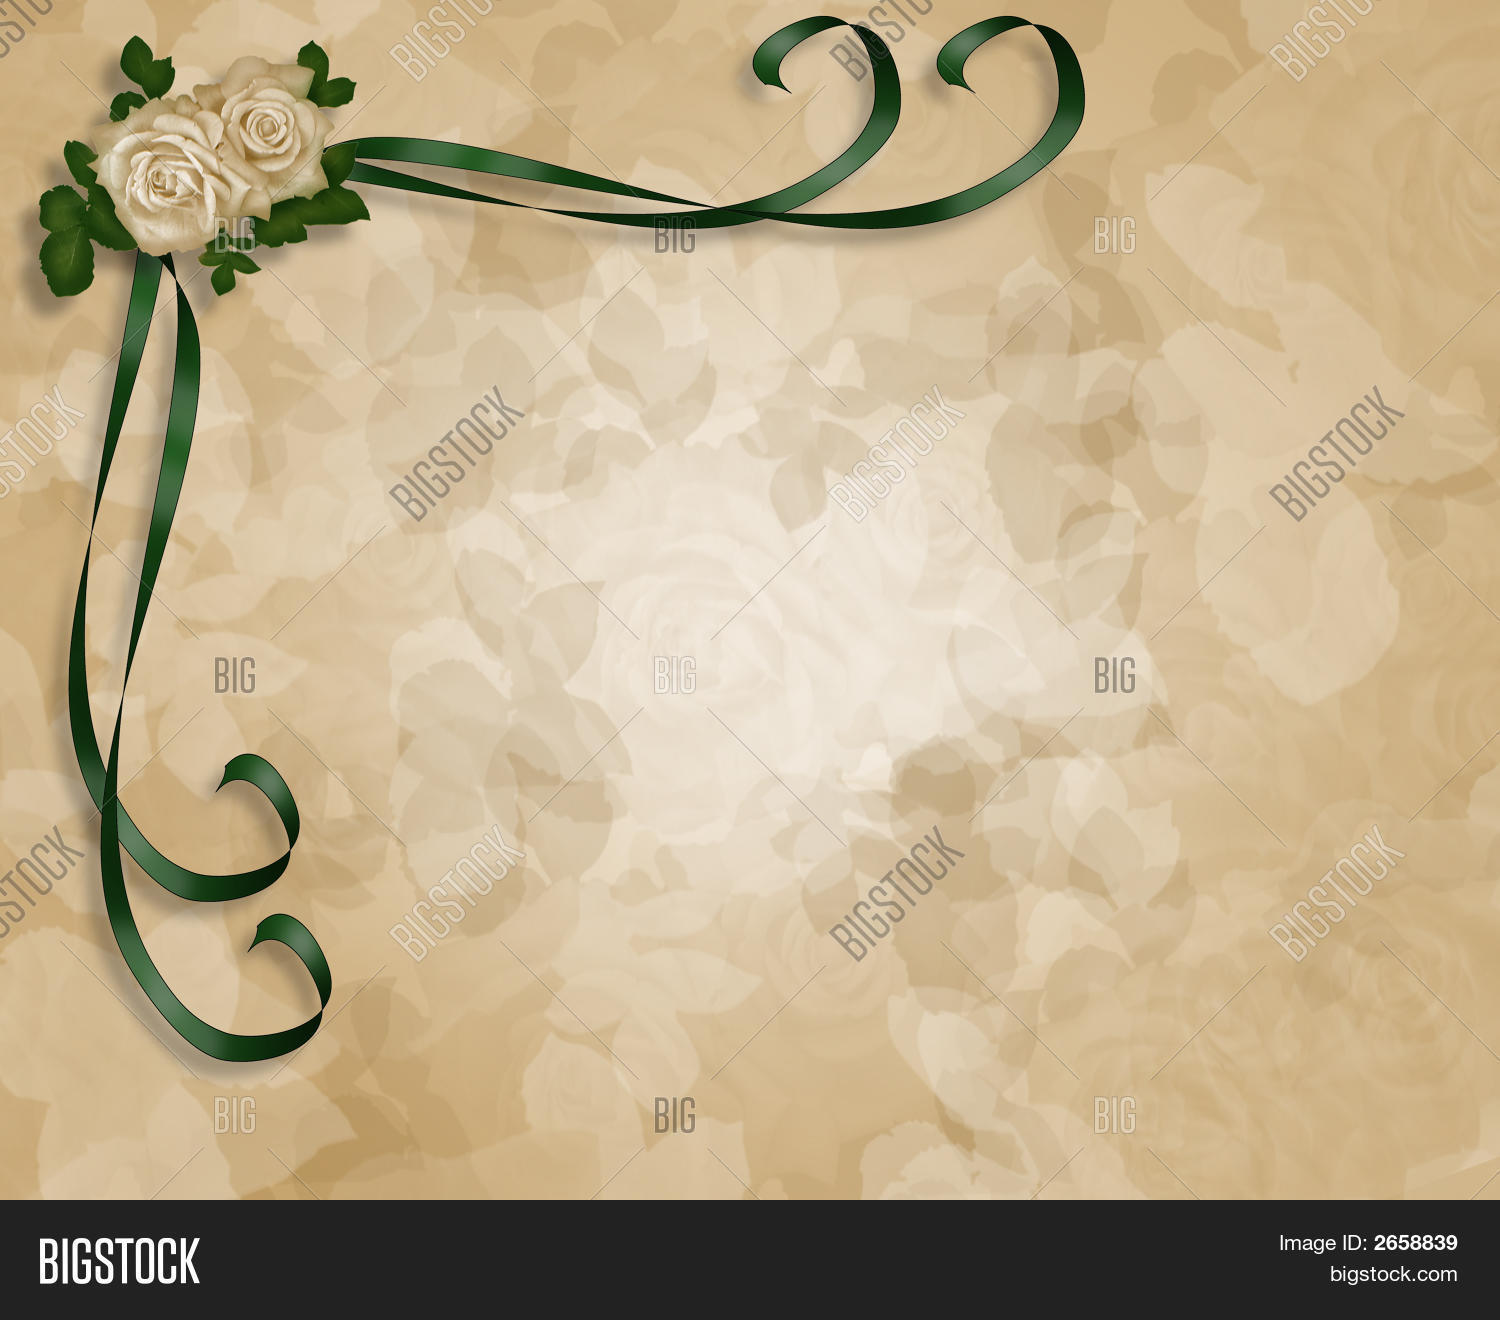 Soft Roses Parchment Image Amp Photo Free Trial Bigstock